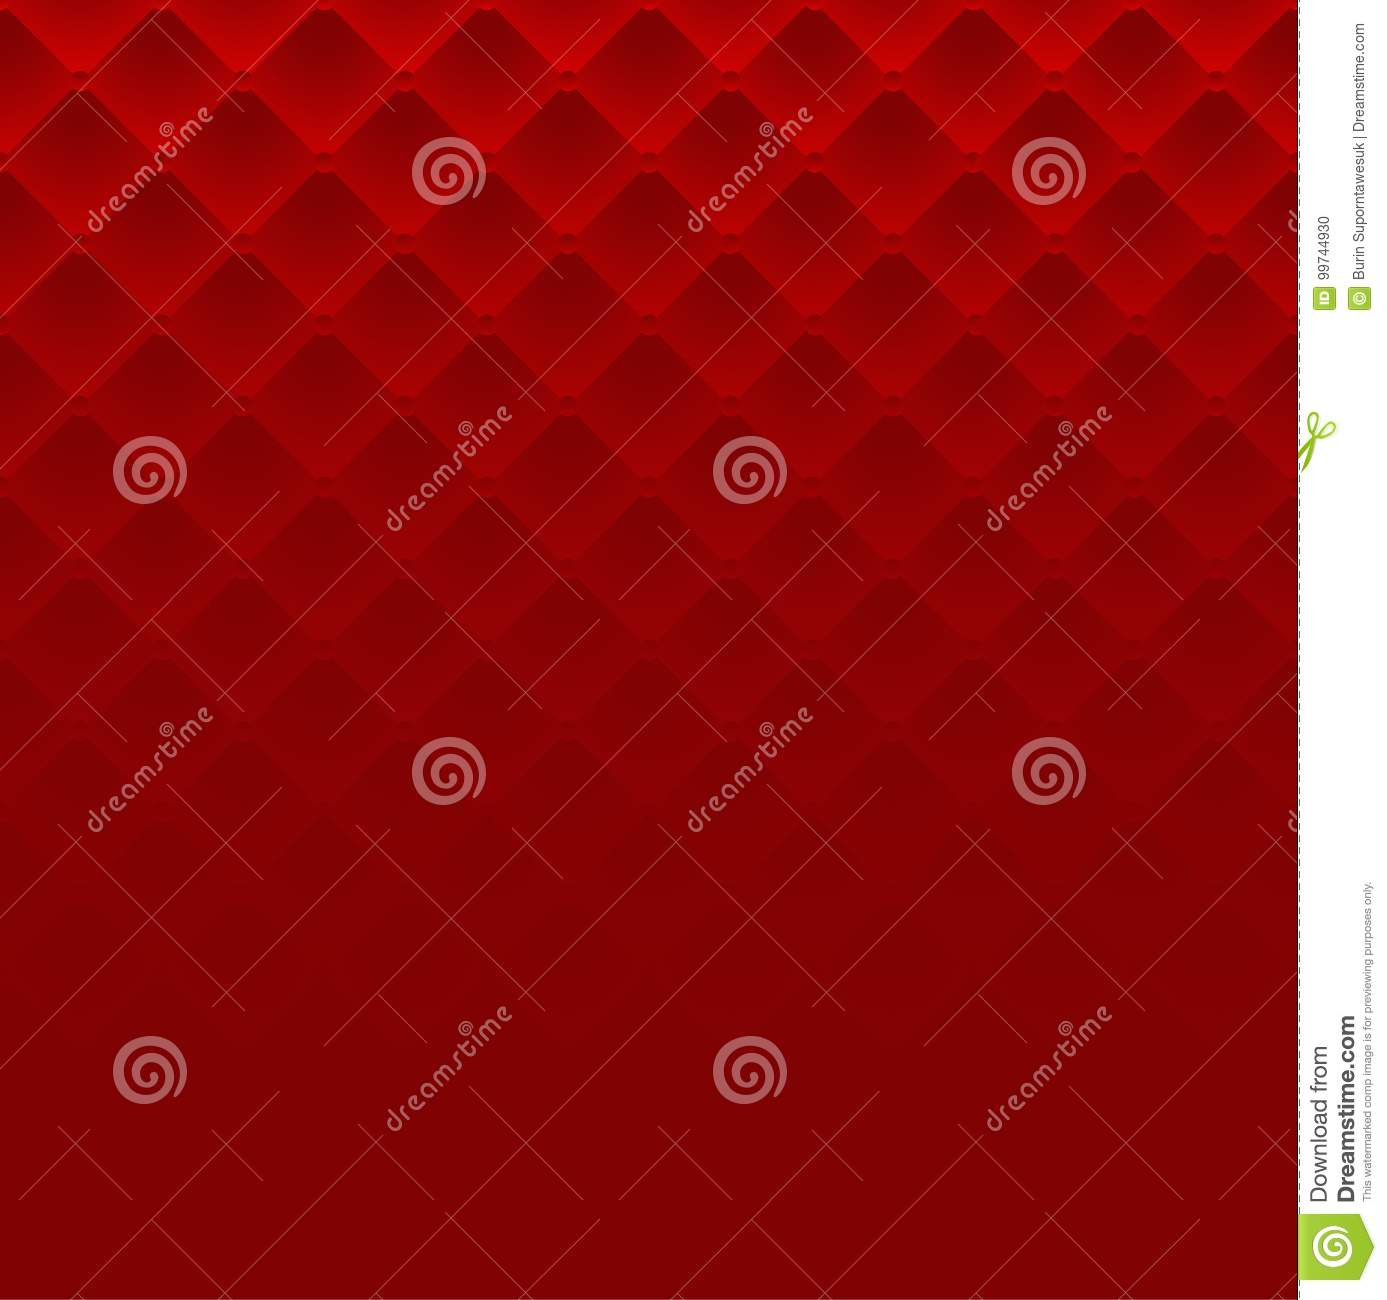 Sofa Texture Vector Red Square Luxury Pattern Sofa Texture Background Stock Vector